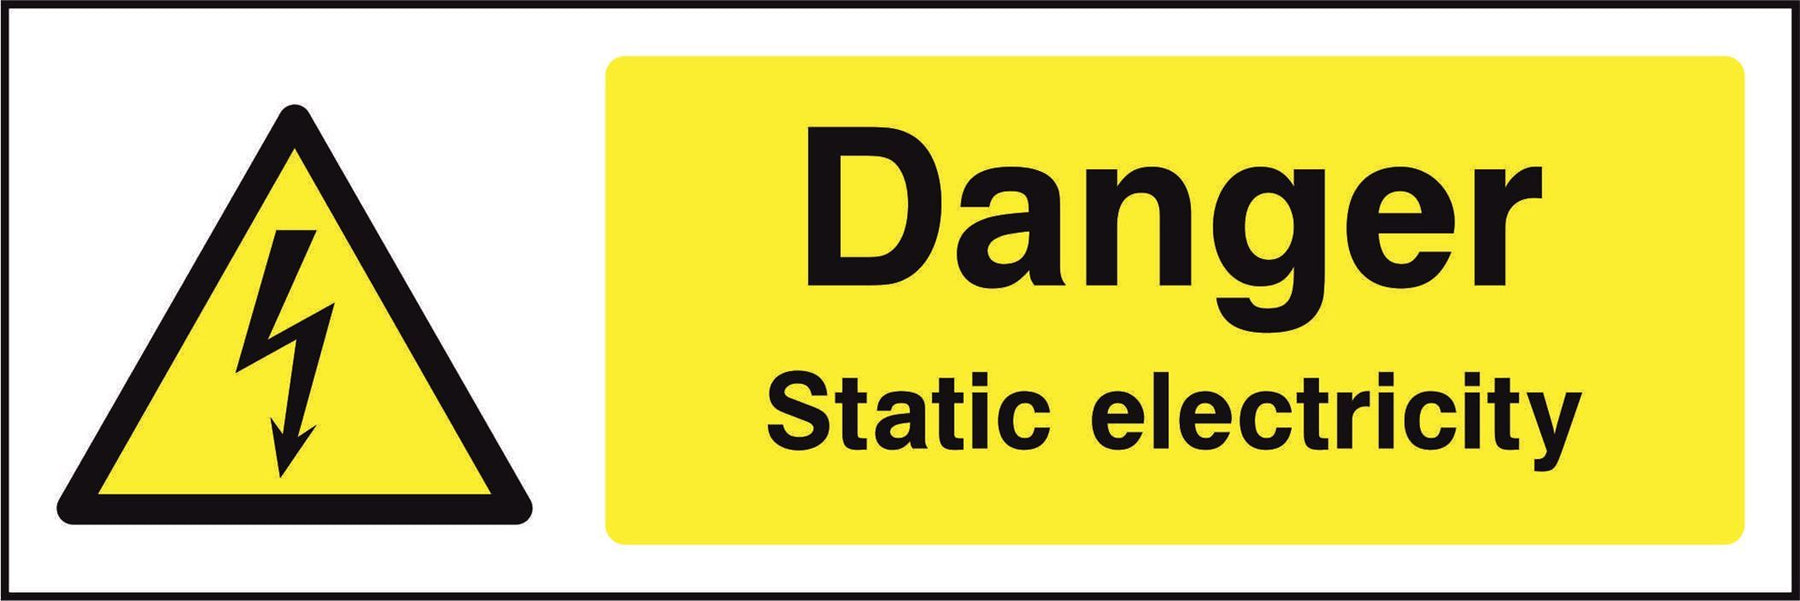 Danger Static electricity